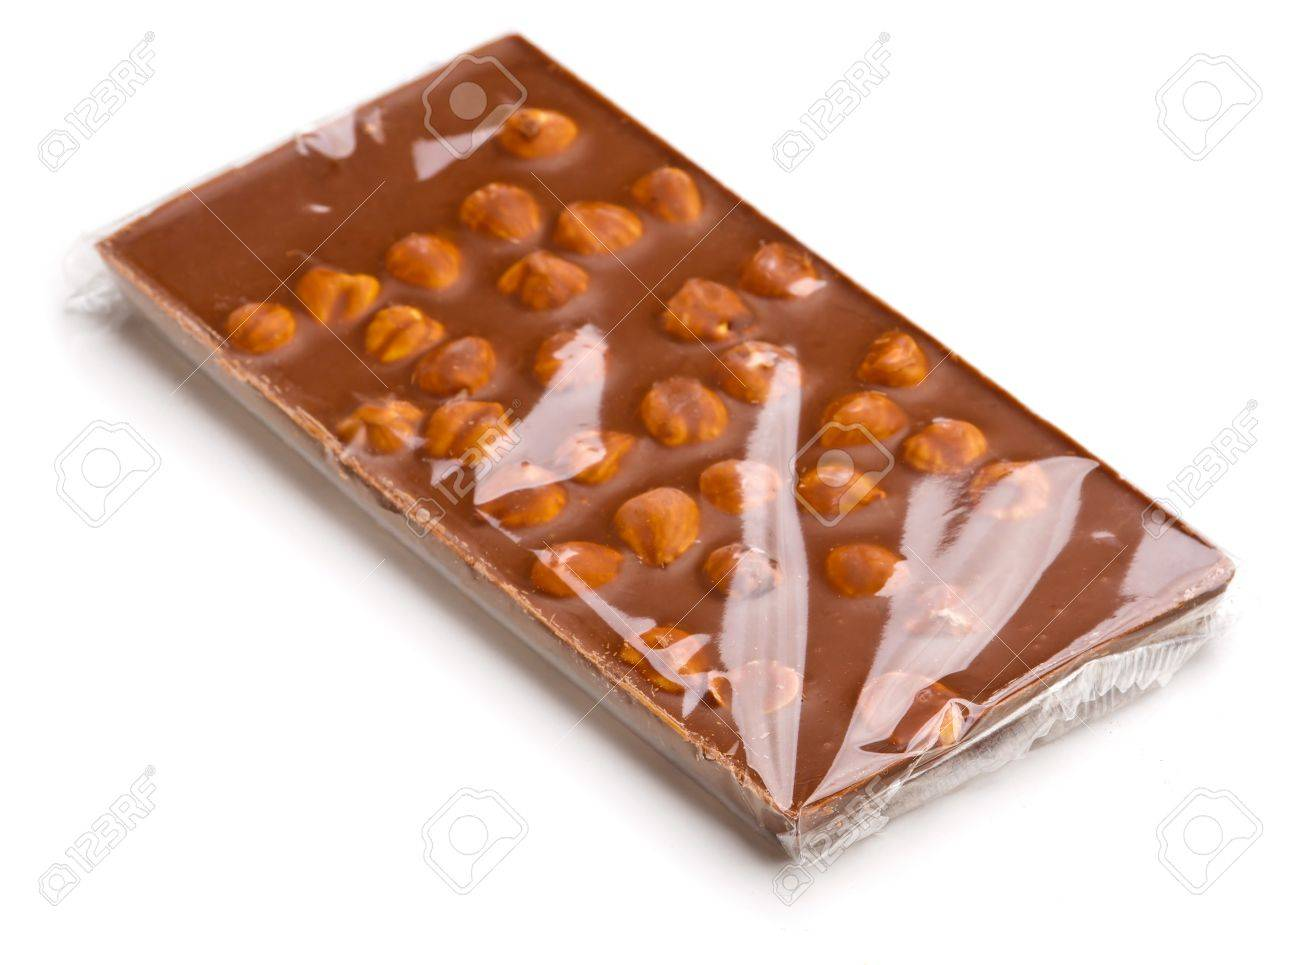 Chocolate With Nuts Wrapped In Transparent Foil Stock Photo ...